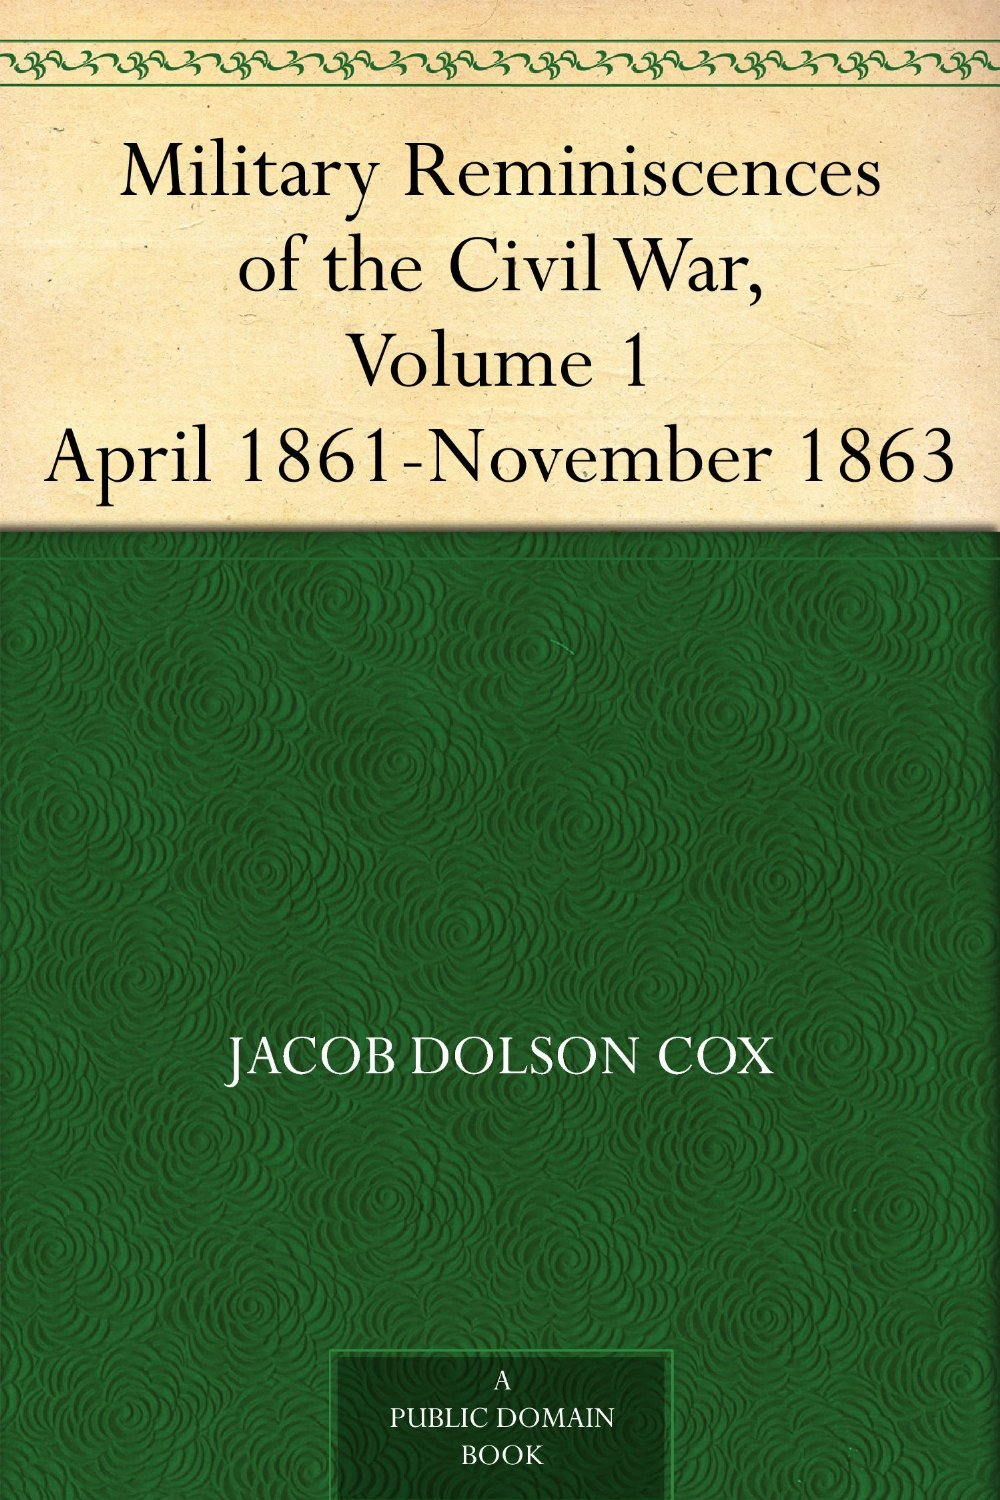 Cover of the book Military Reminiscences of the Civil War, Volume 1: April 1861-November 1863 by Jacob D. (Jacob Dolson) Cox